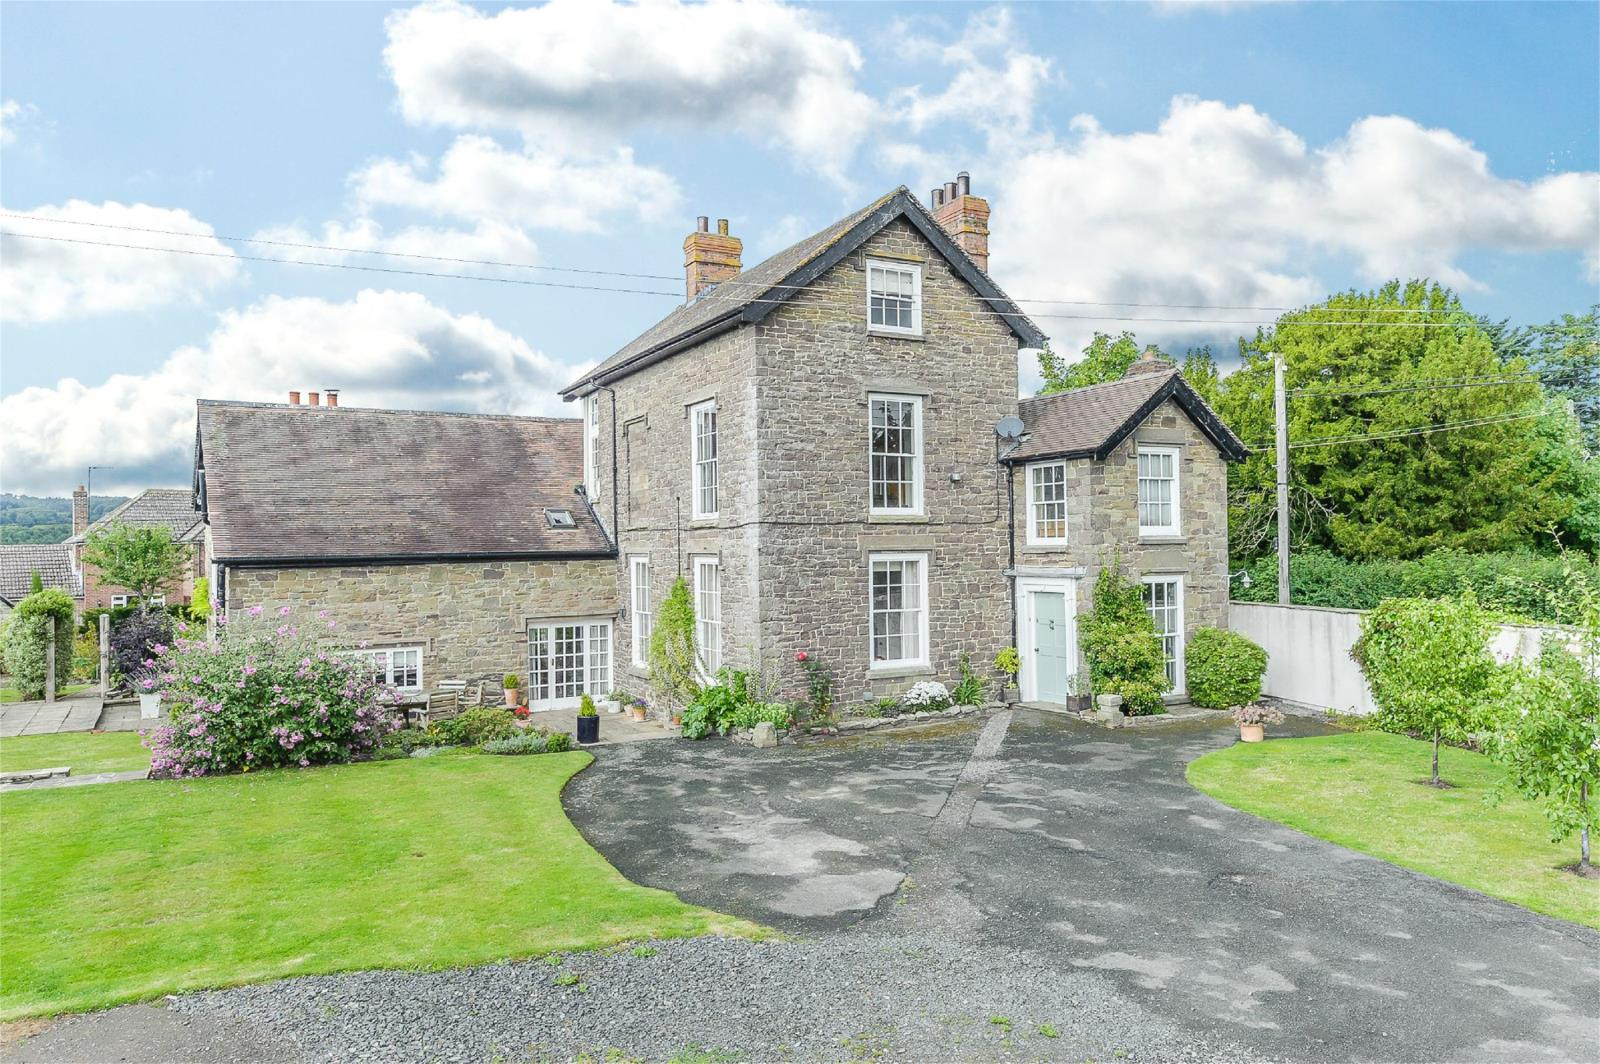 The Gables, Wistanstow, Shropshire, SY7